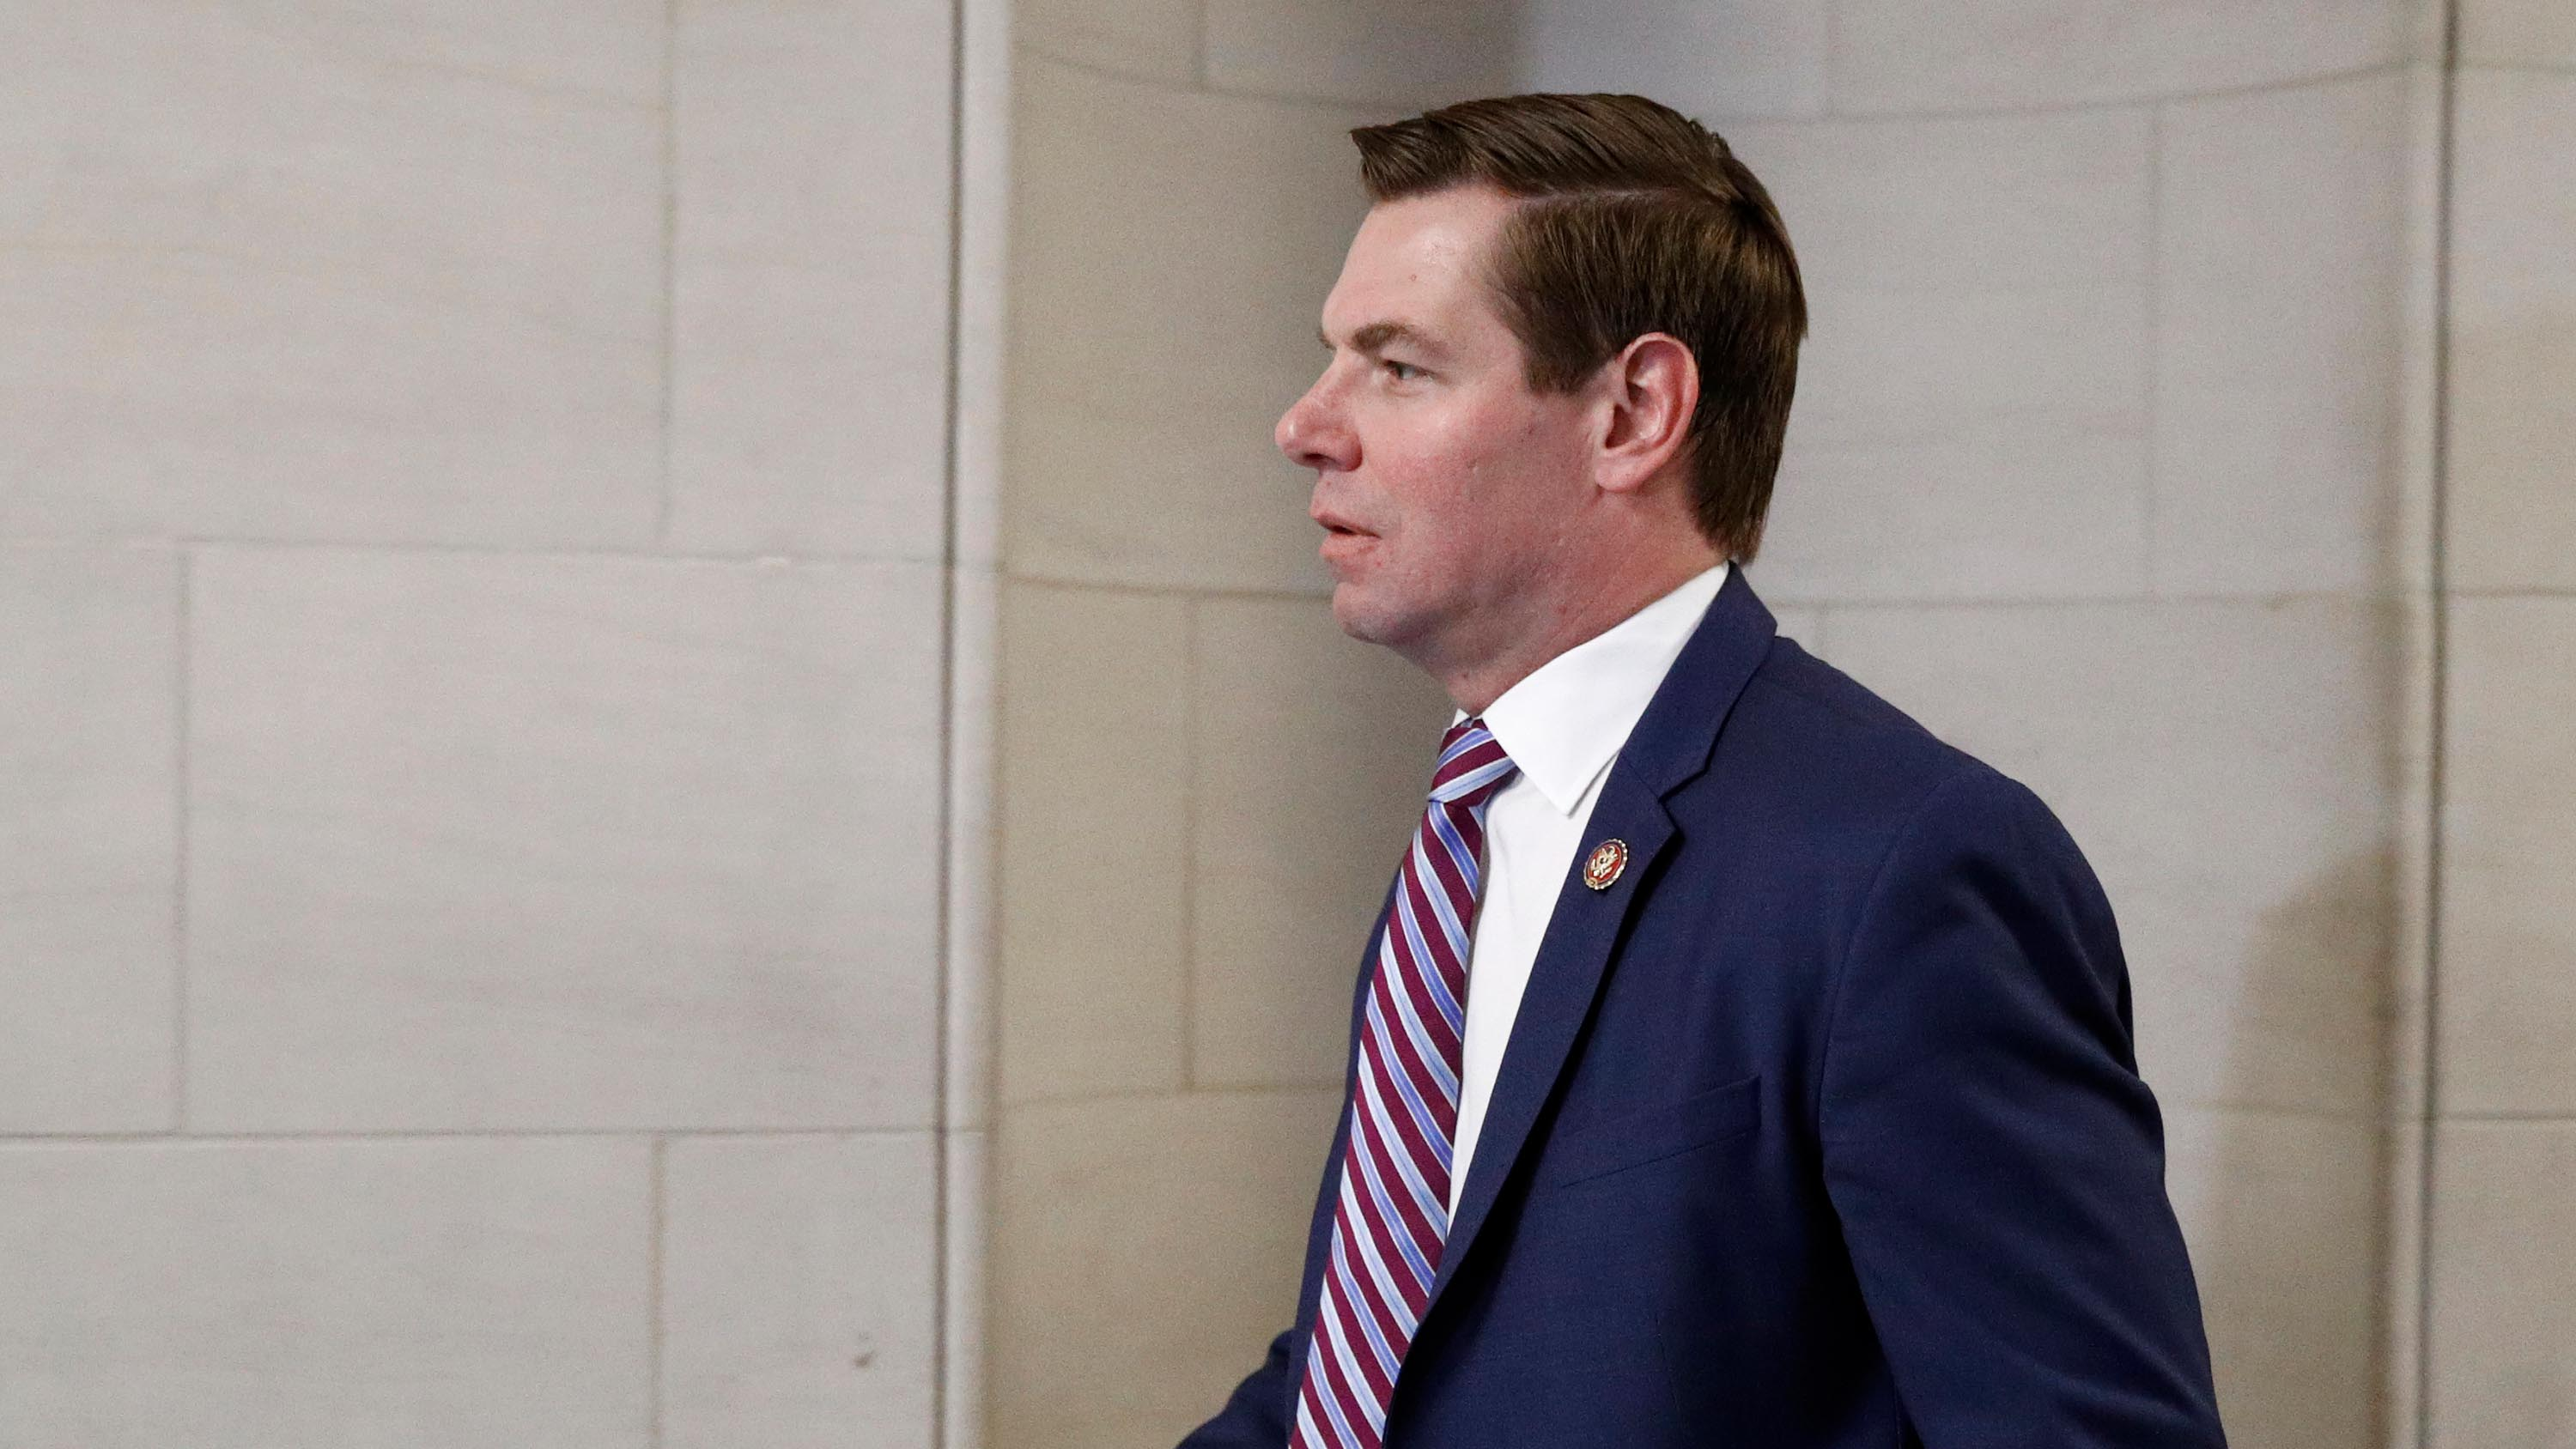 Rep. Eric Swalwell walks to a hearing room on Monday, December 9.